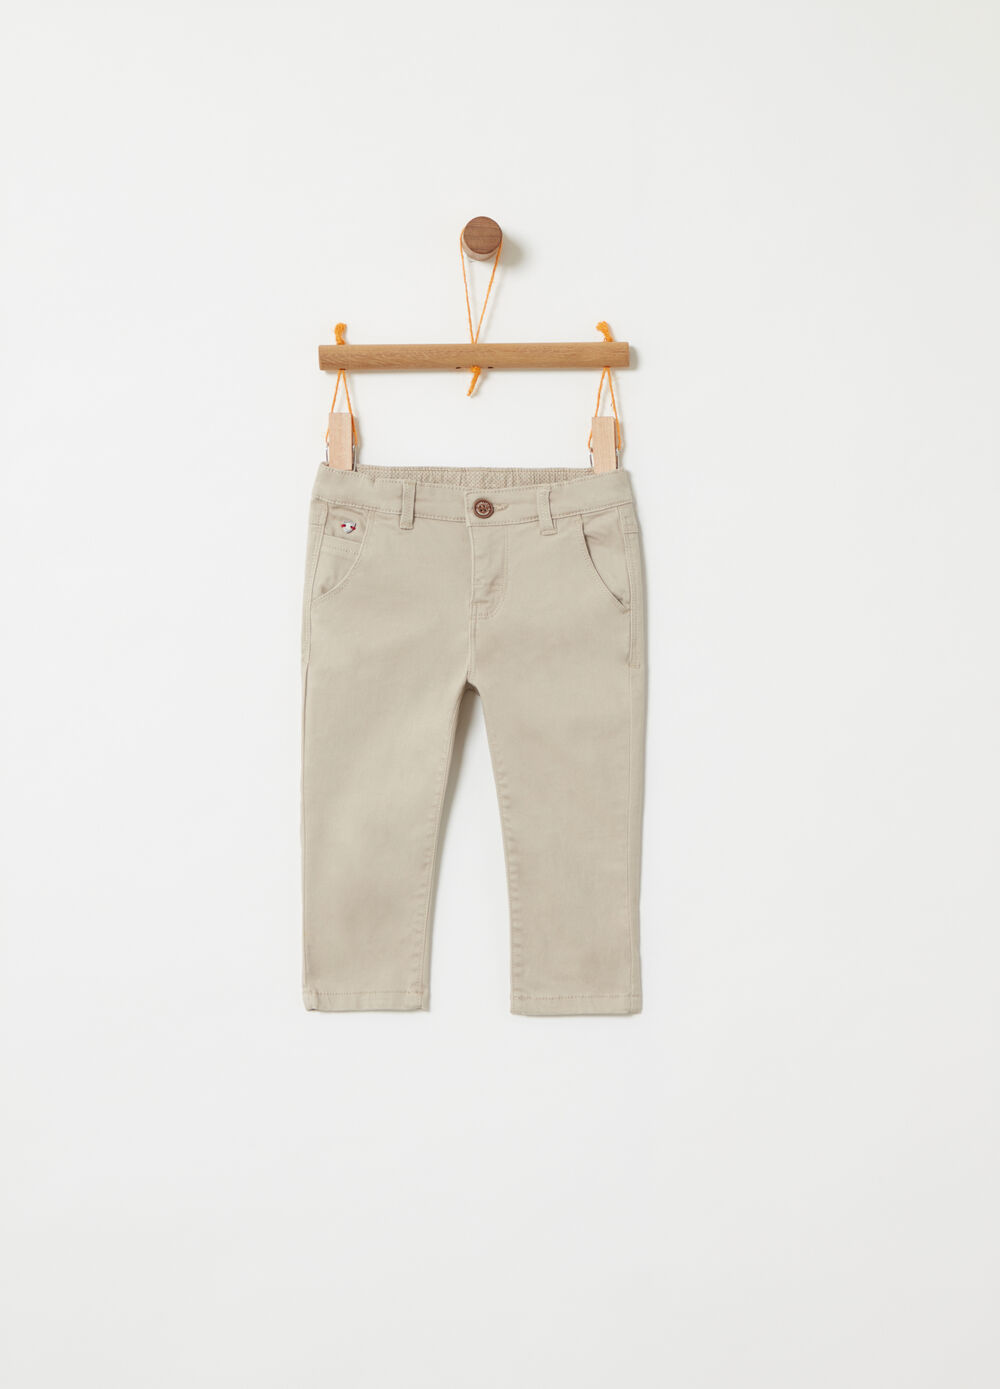 5-pocket stretch trousers